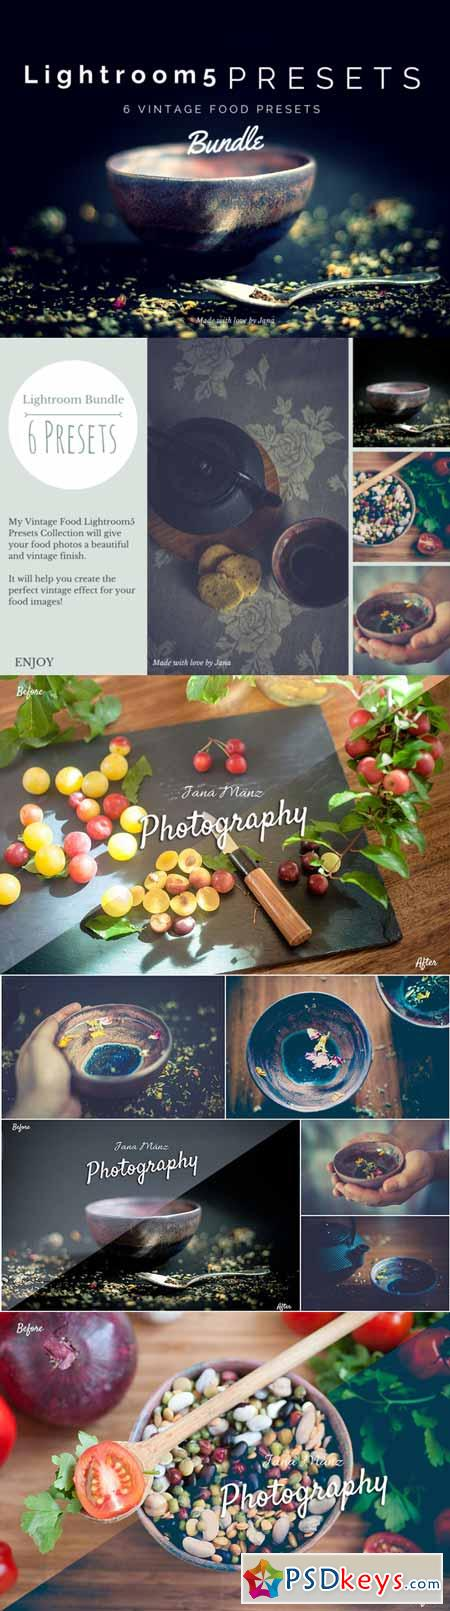 6 LR Presets Vintage Food Photos 177671